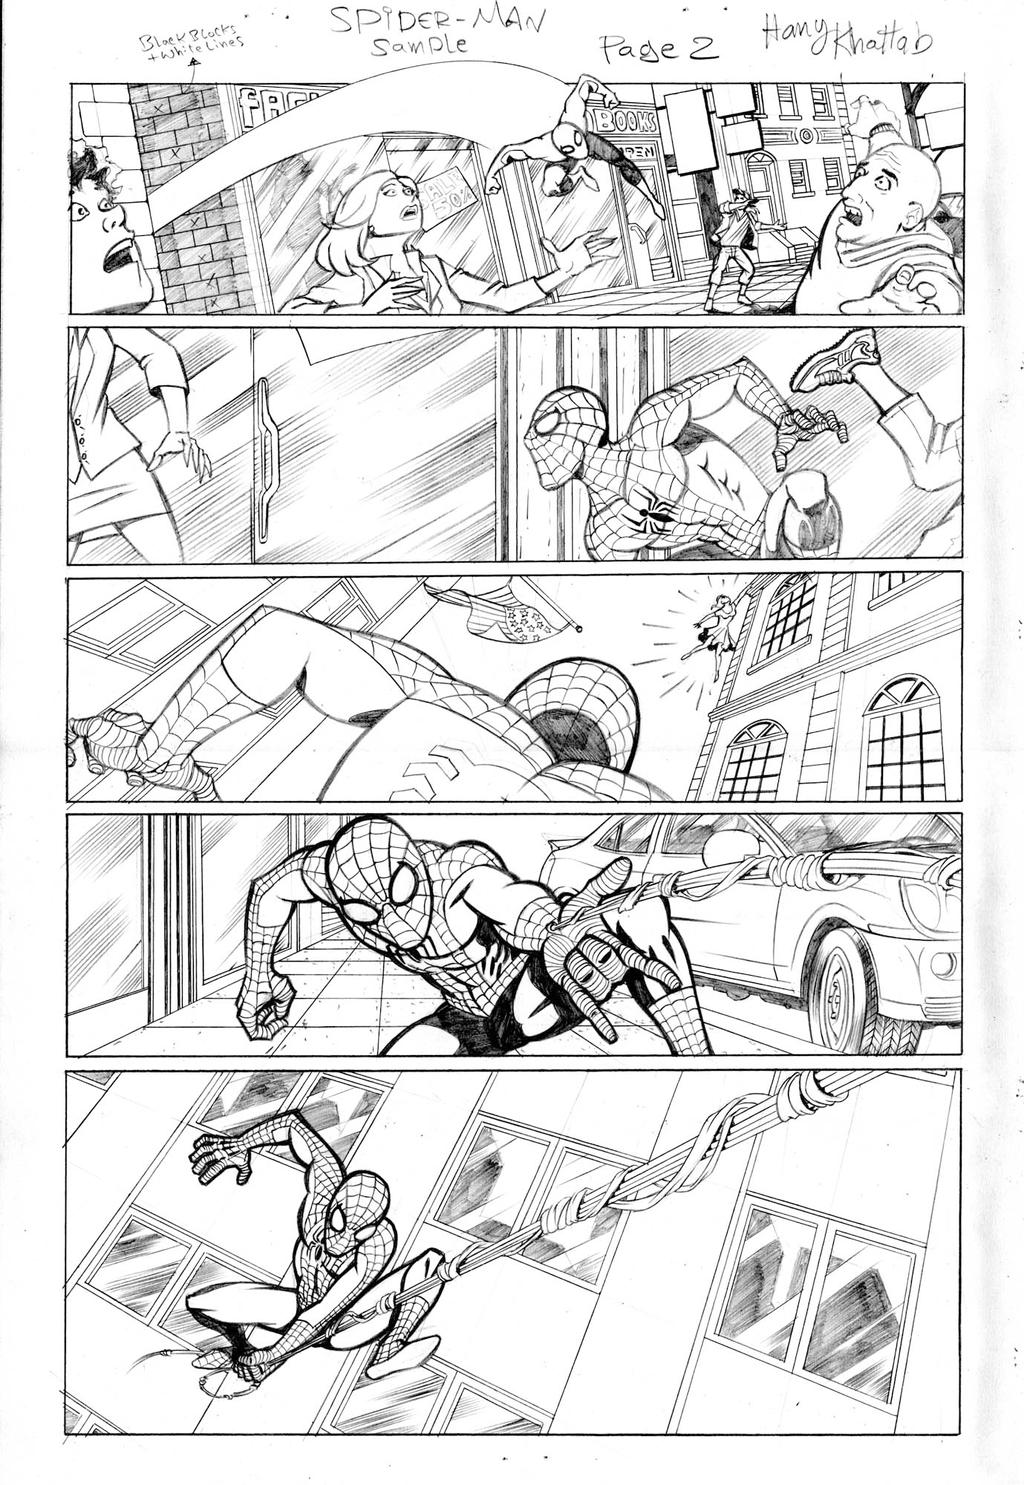 Spider-Man Sample 02 by hany-khattab